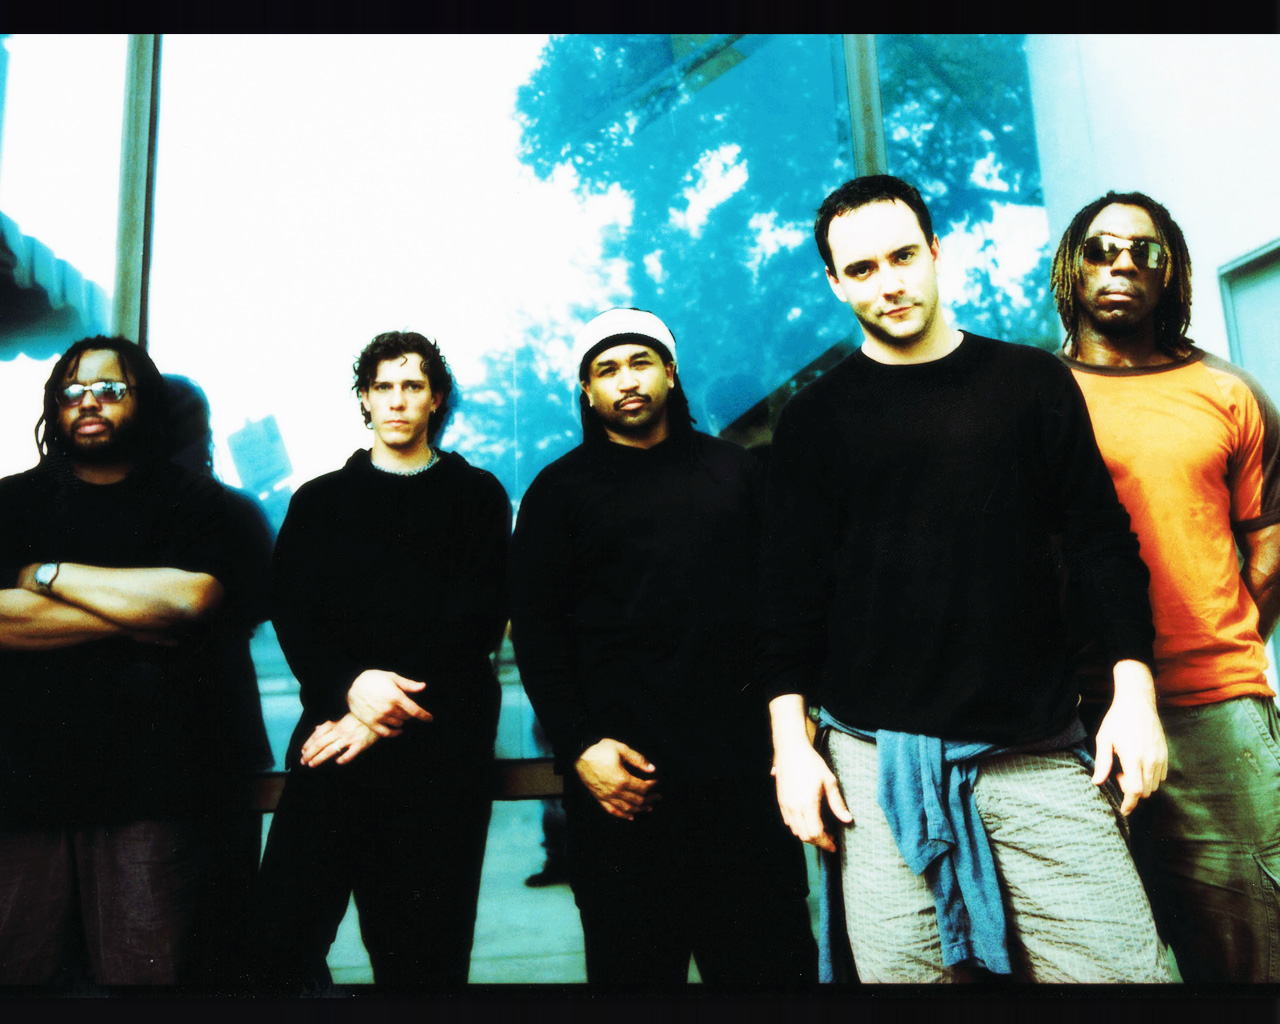 LeRoi Moore on the left in this photo of the DMB Band